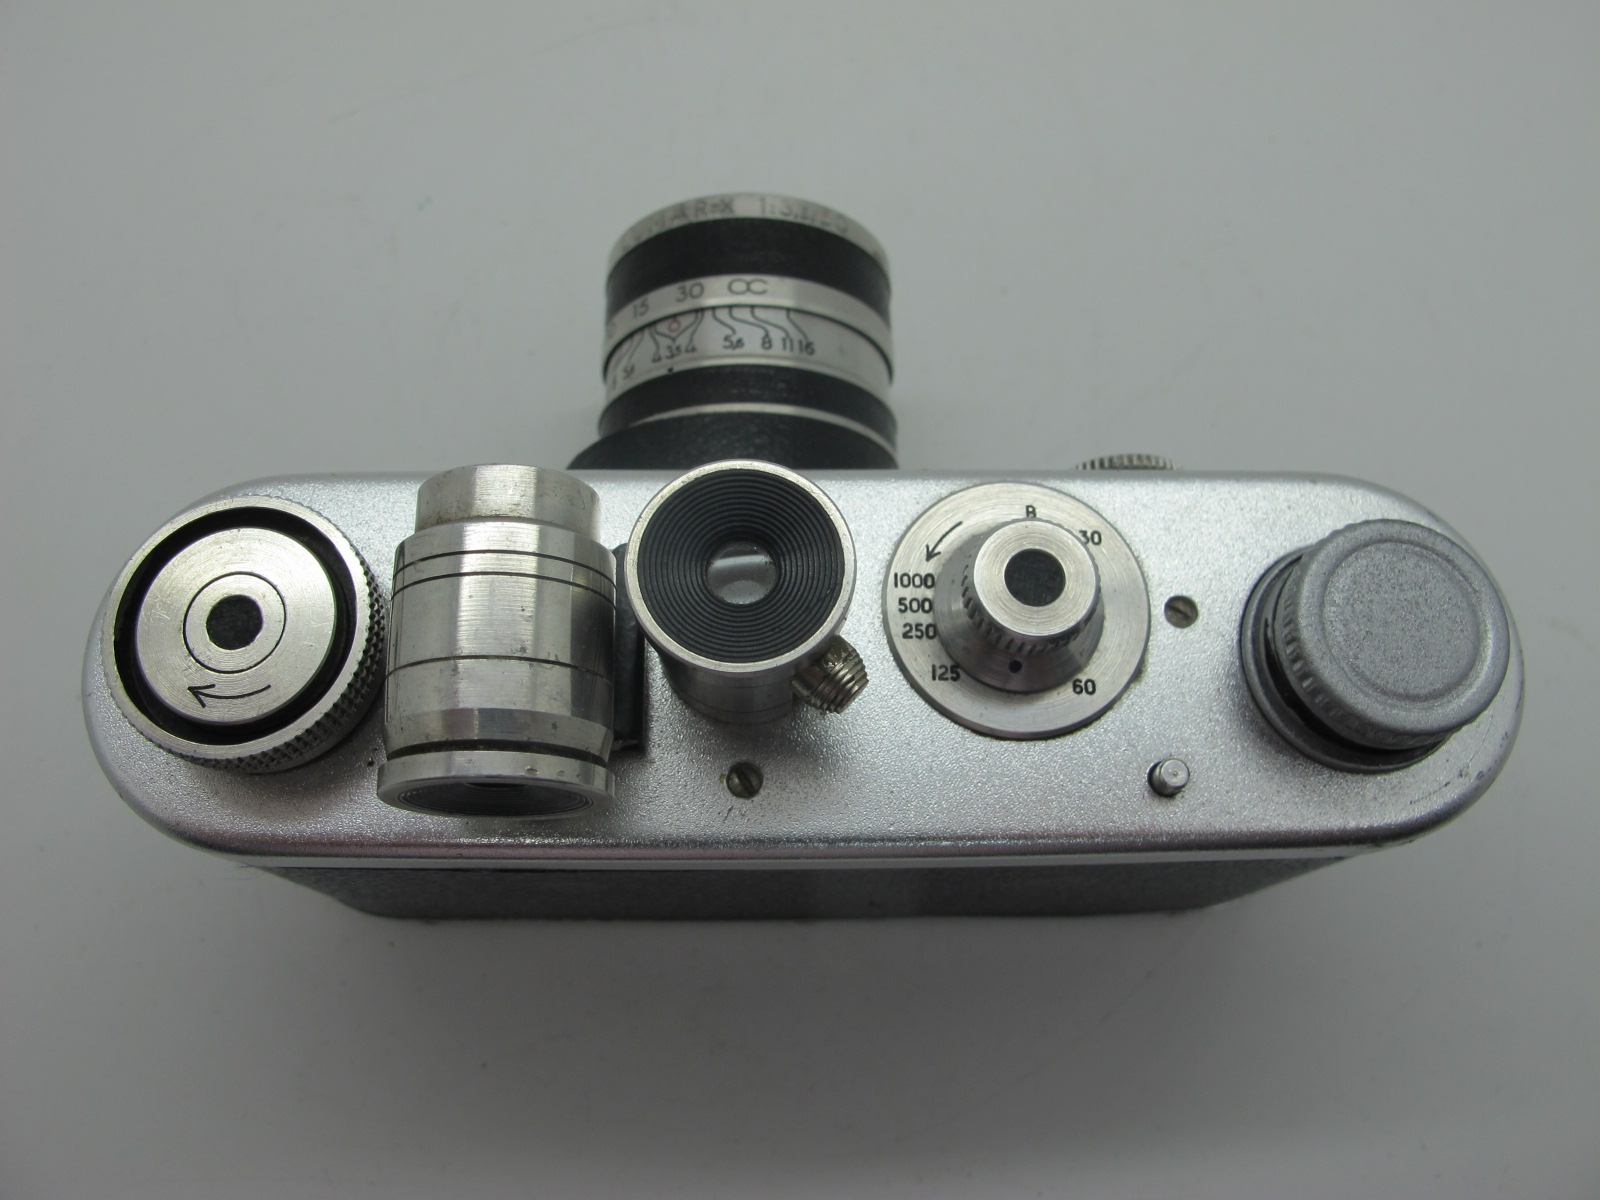 Saraber Goslar Finetta 88, Edika Flex, plus two other camera's in brown leather cases. (4) - Image 4 of 13